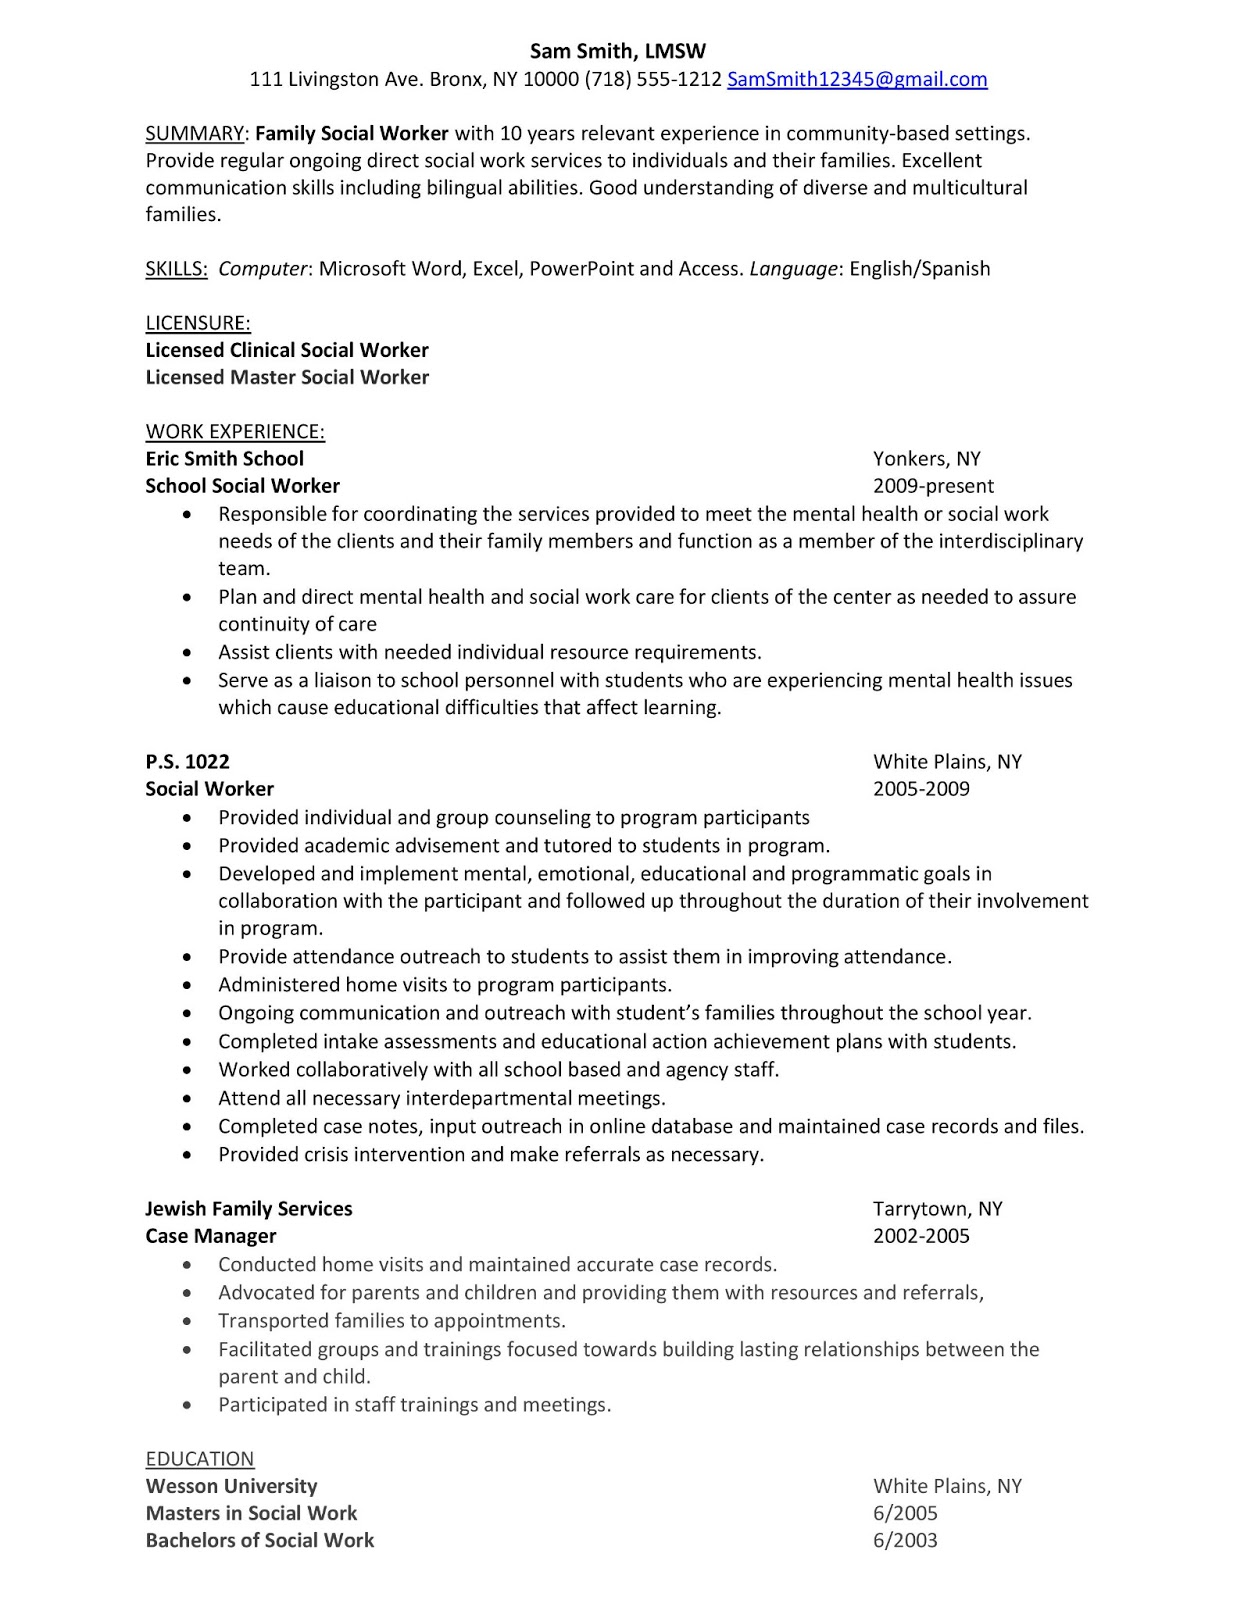 pastor resume service create resume service for pastors de deugd dekkers best youth resume - Youth Counselor Cover Letter